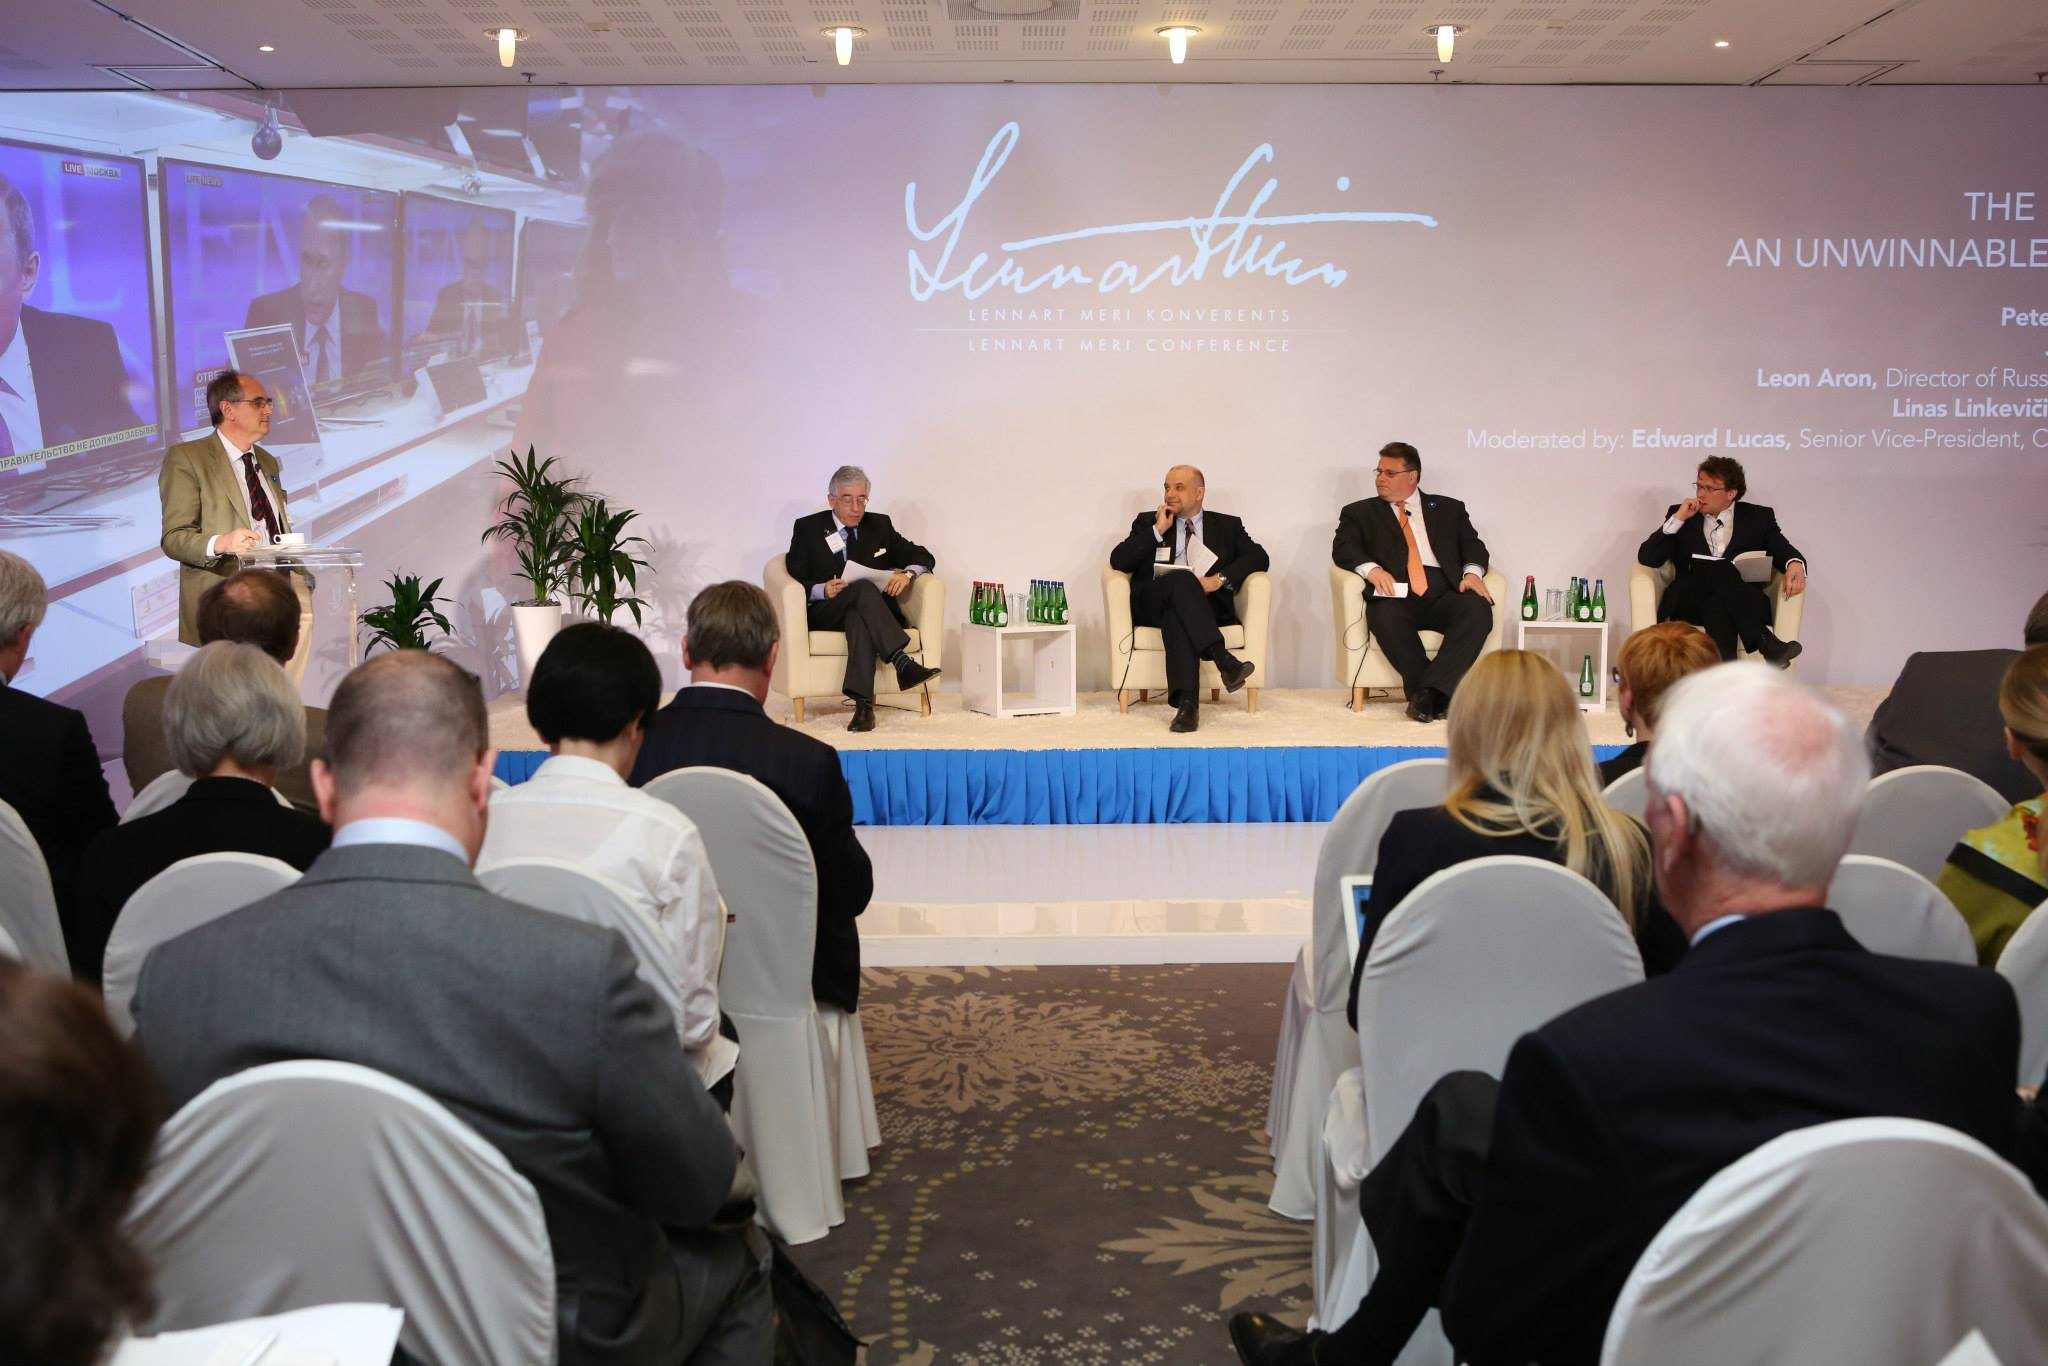 Lennart Meri Conference set to discuss future of Europe and NATO ahead of the Warsaw summit